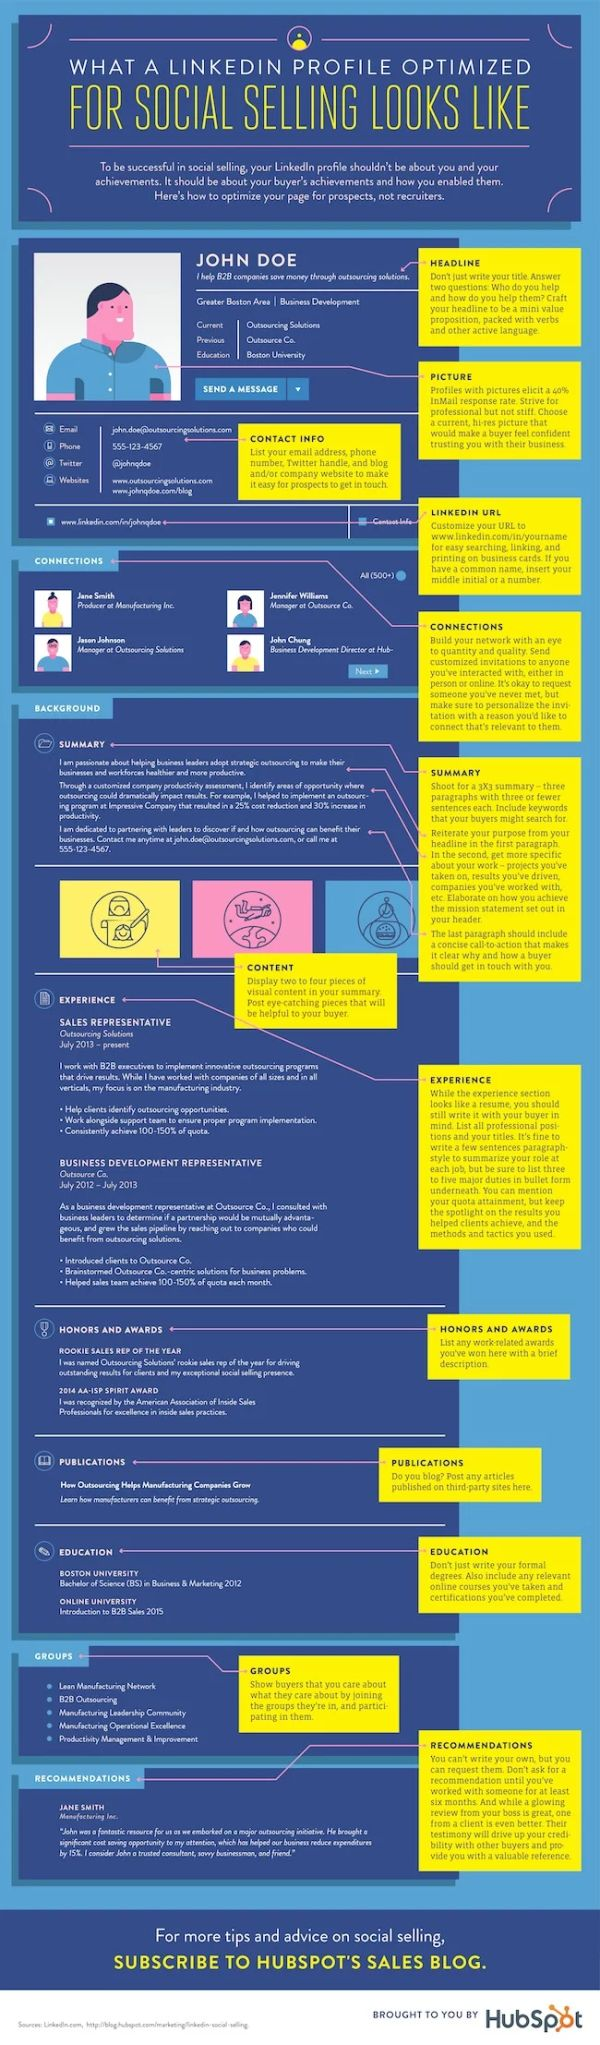 Infographic: How to maximize your LinkedIn marketing potential